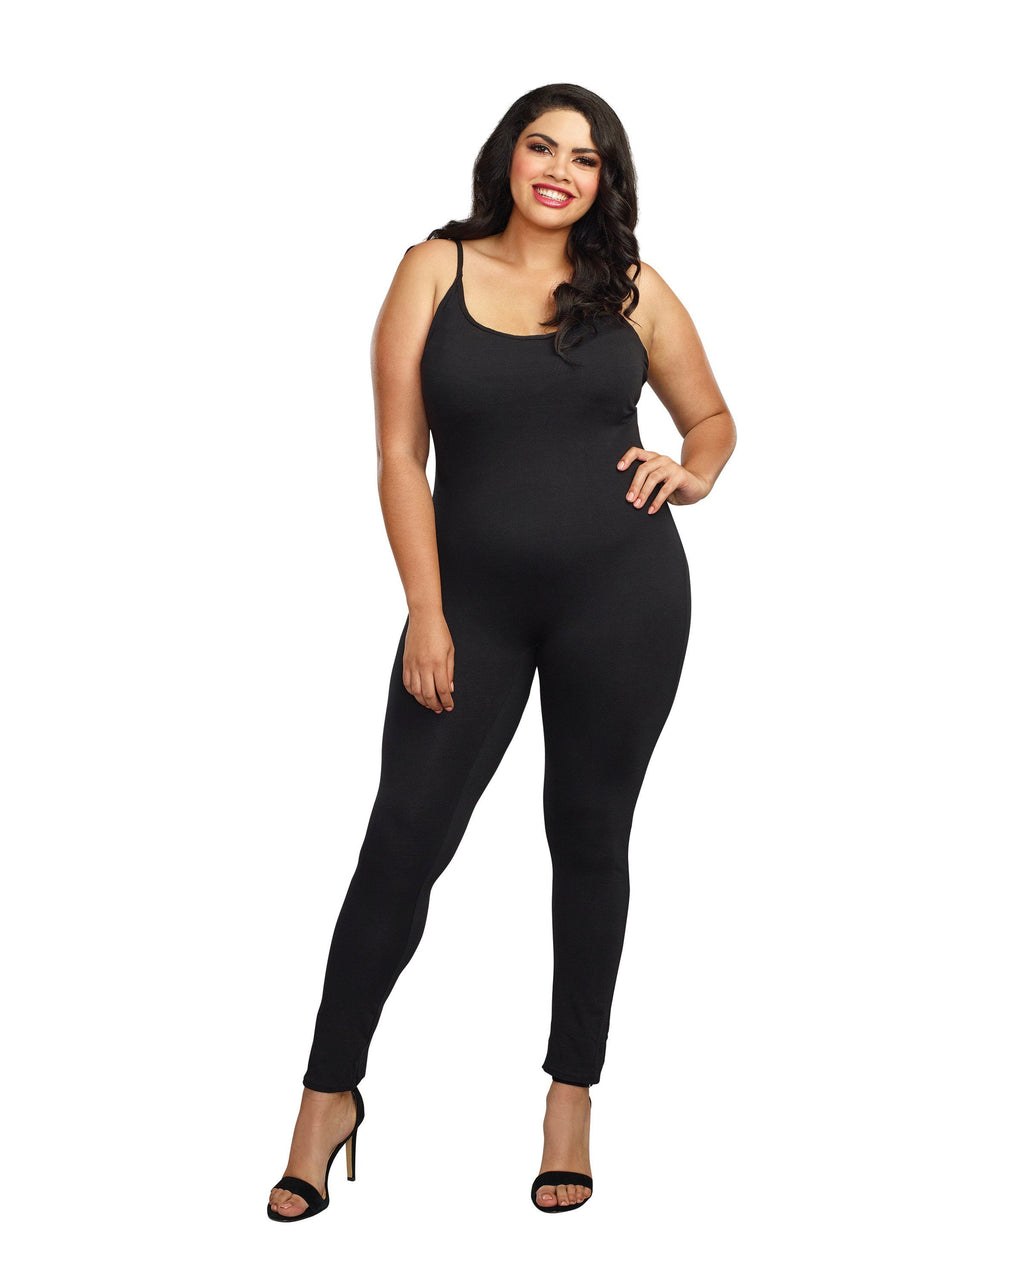 Plus Size Basic Unitard Costume Accessory Dreamgirl Costume